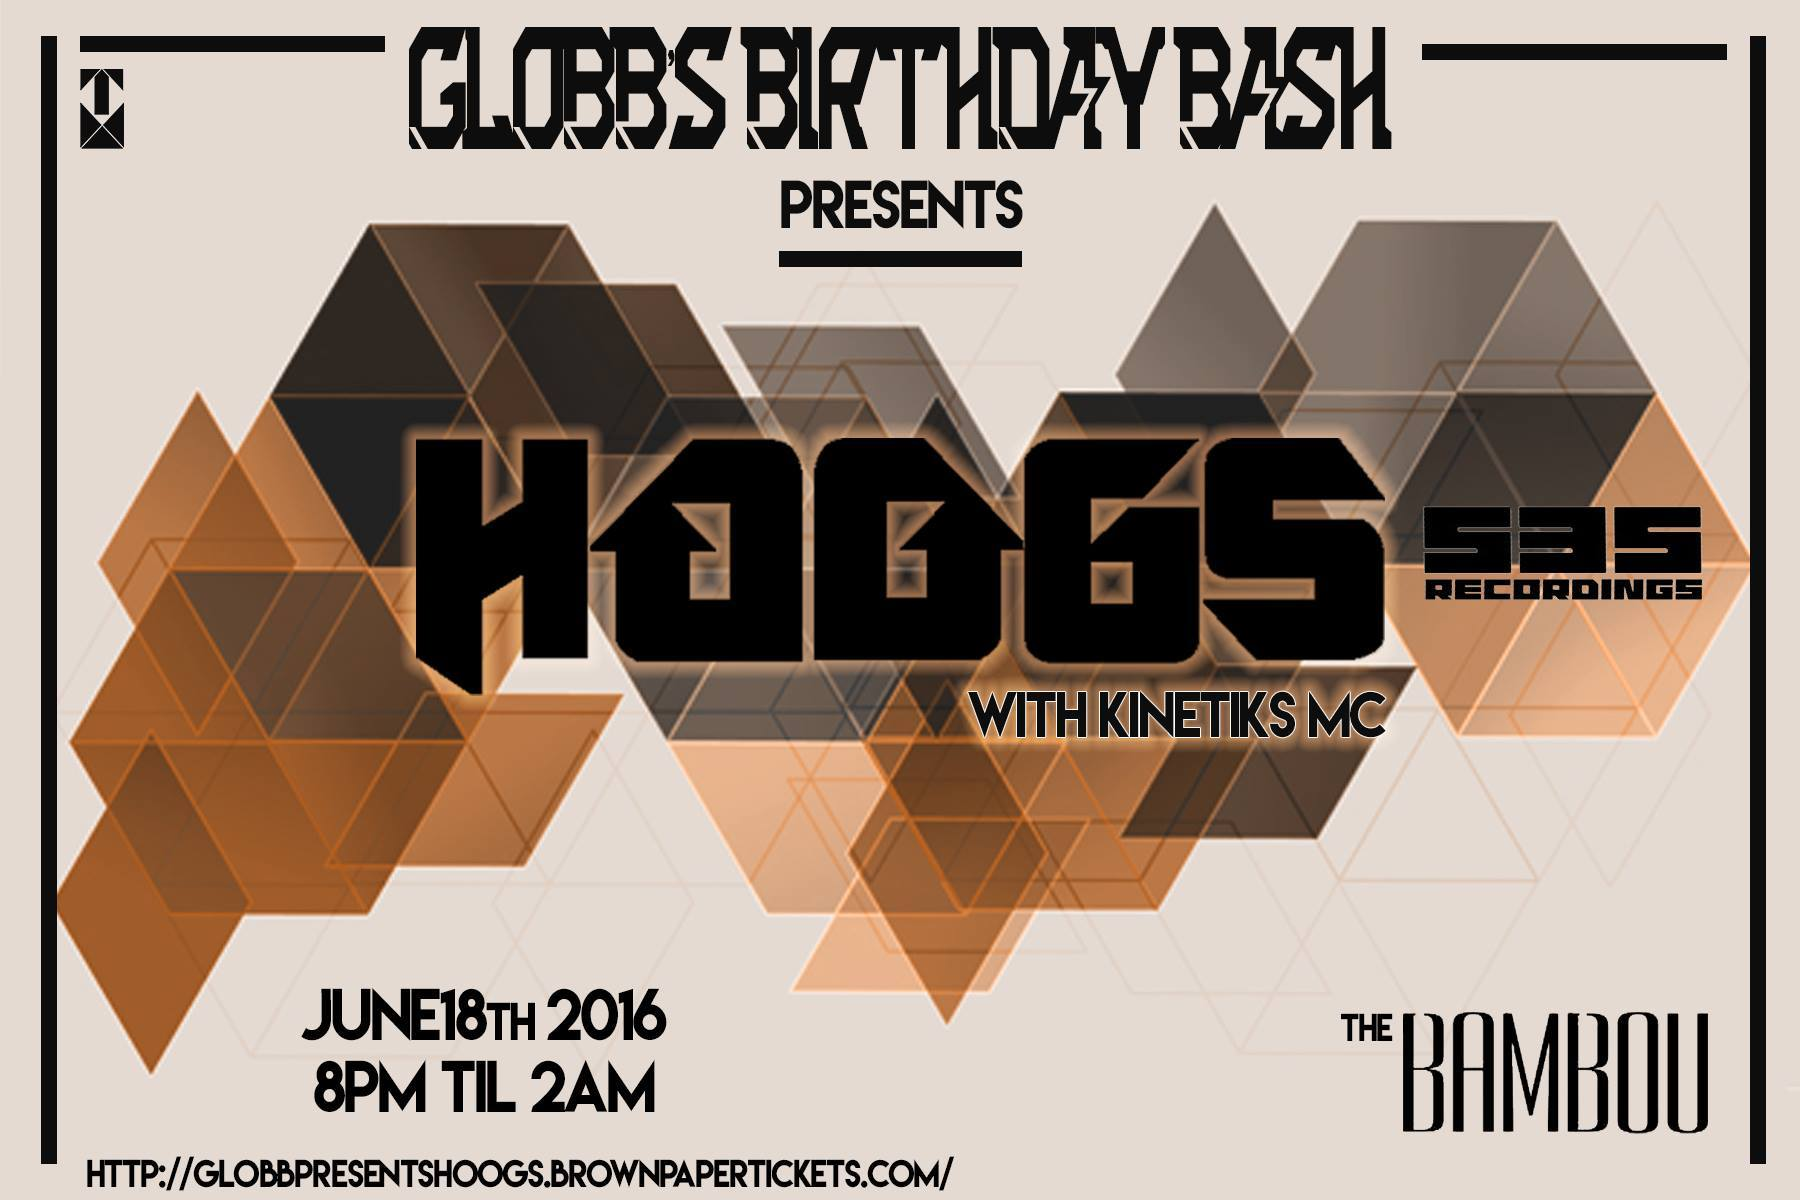 Globb's Birthday Bash presents: Hoogs @ Bambou - 6/18!